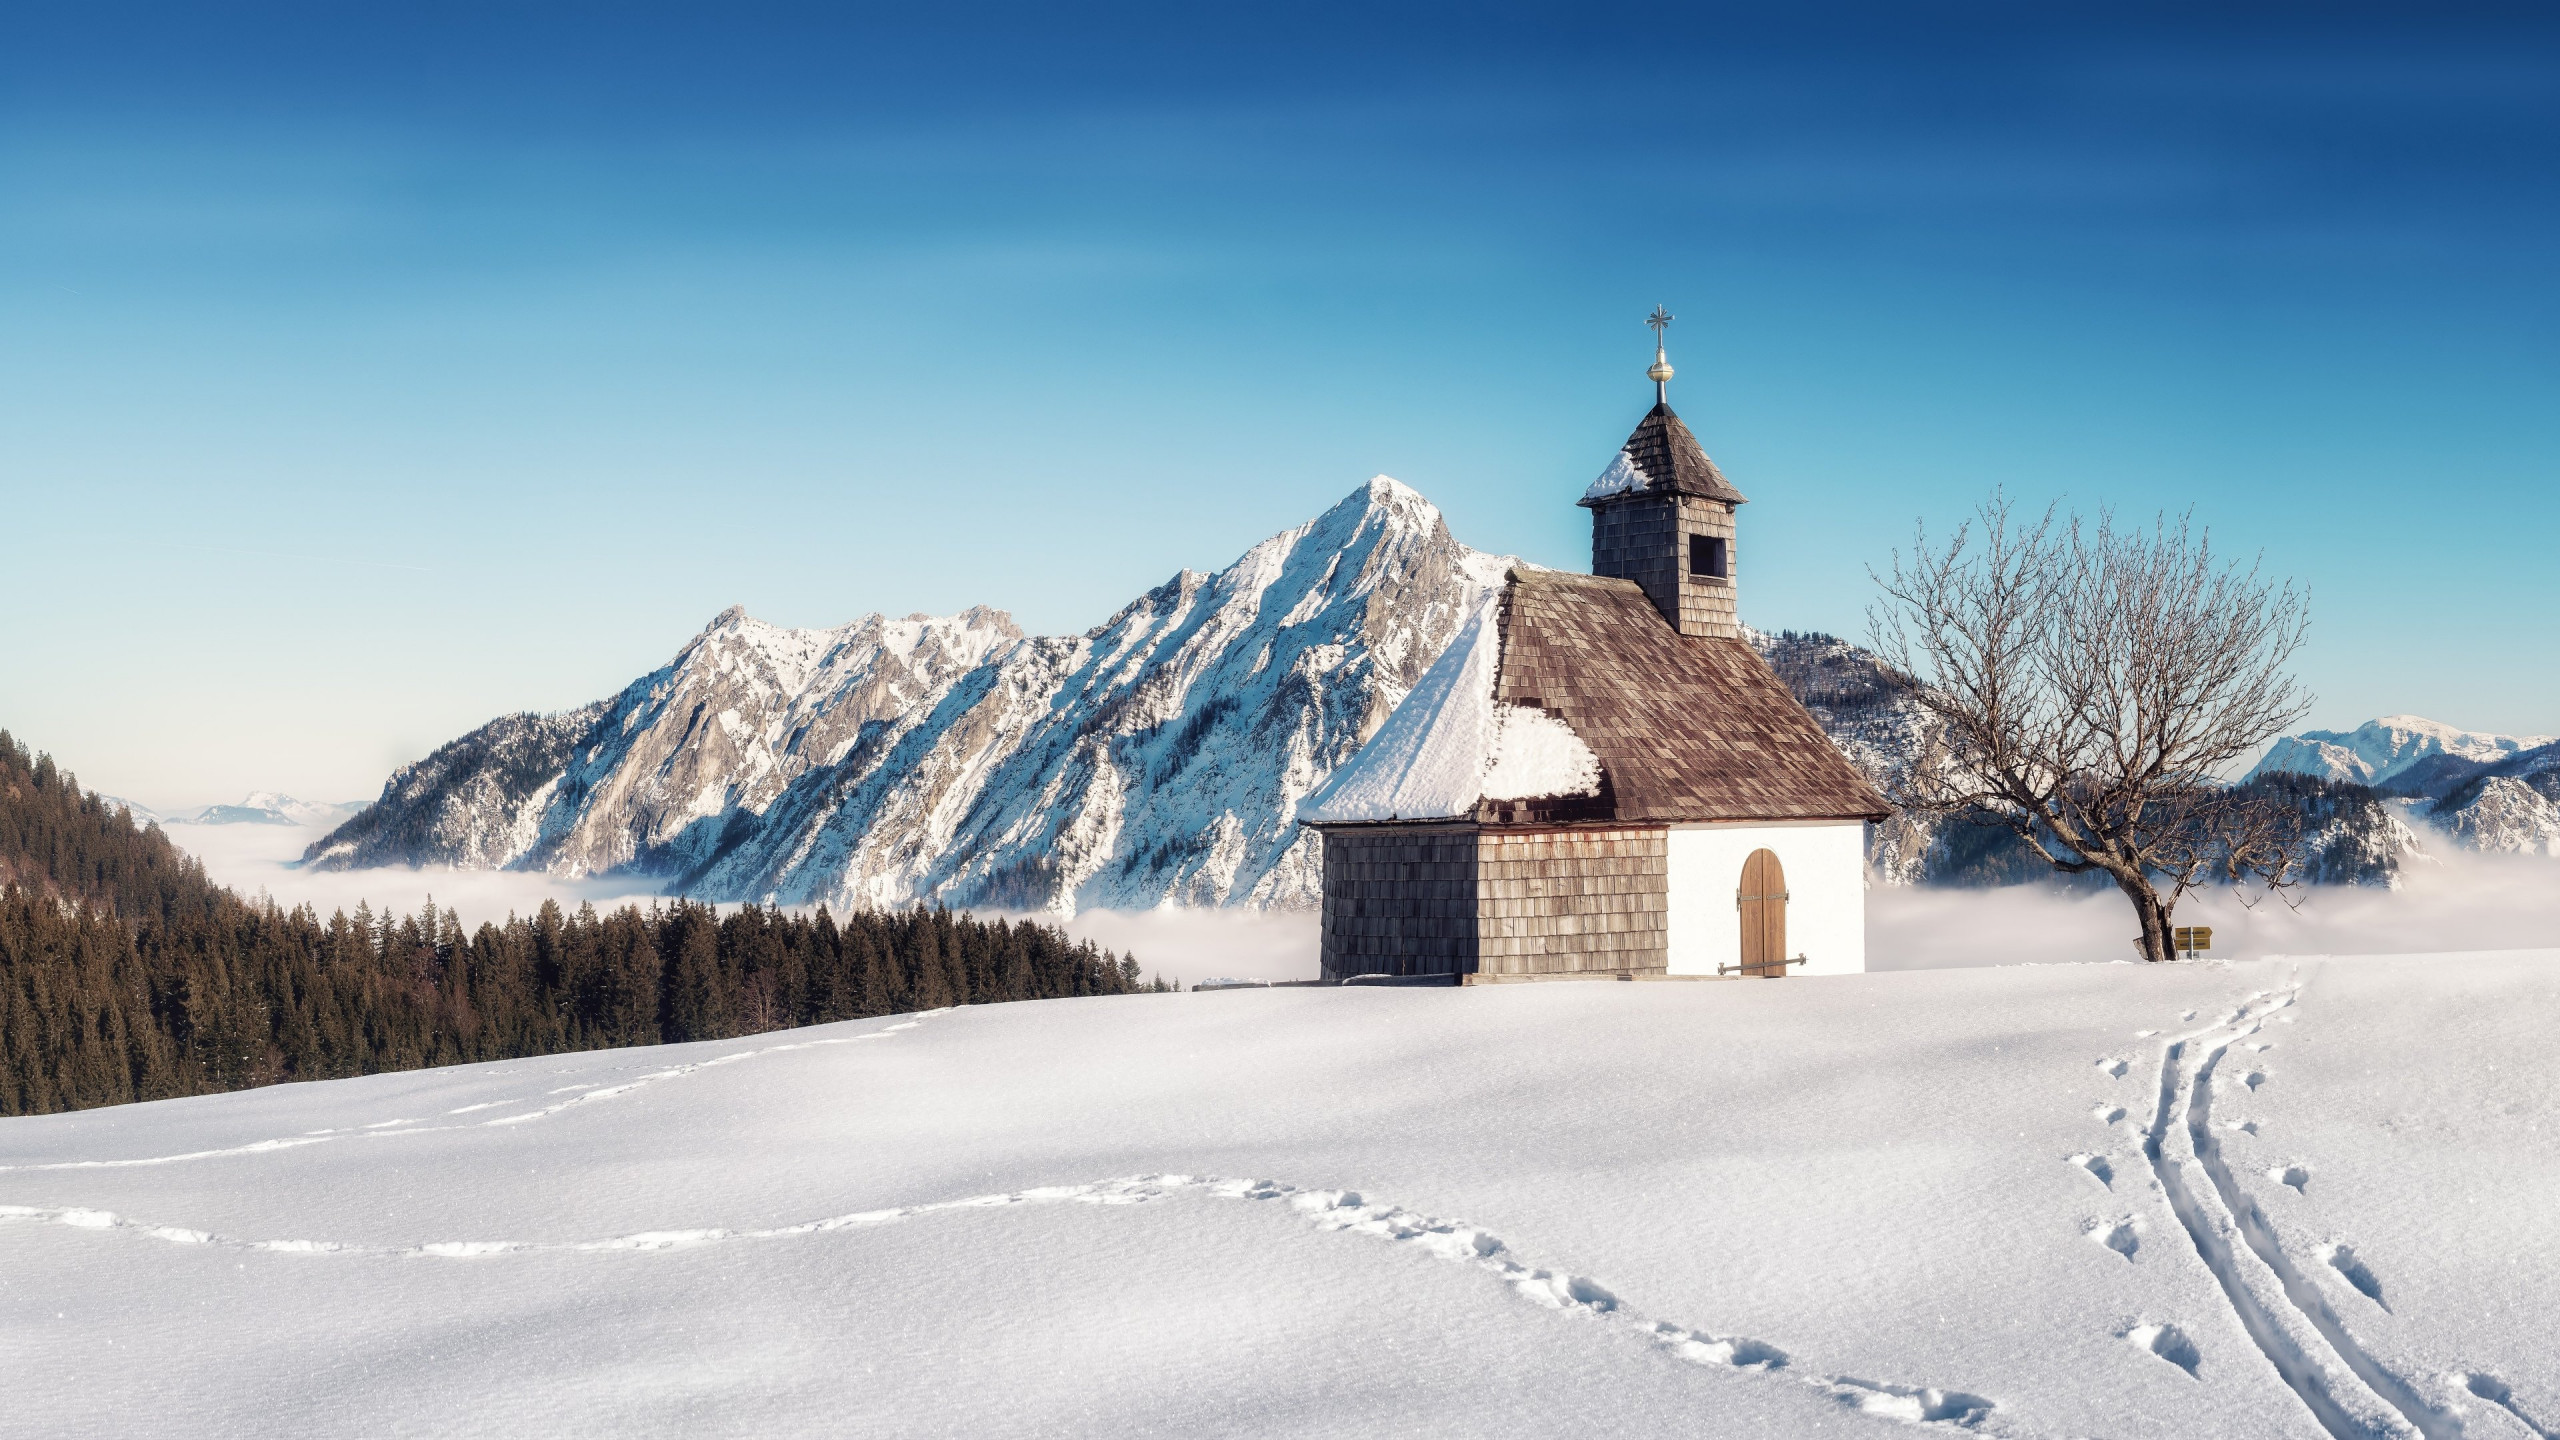 Alpine Winter landscape from Strobl, Austria wallpaper 2560x1440